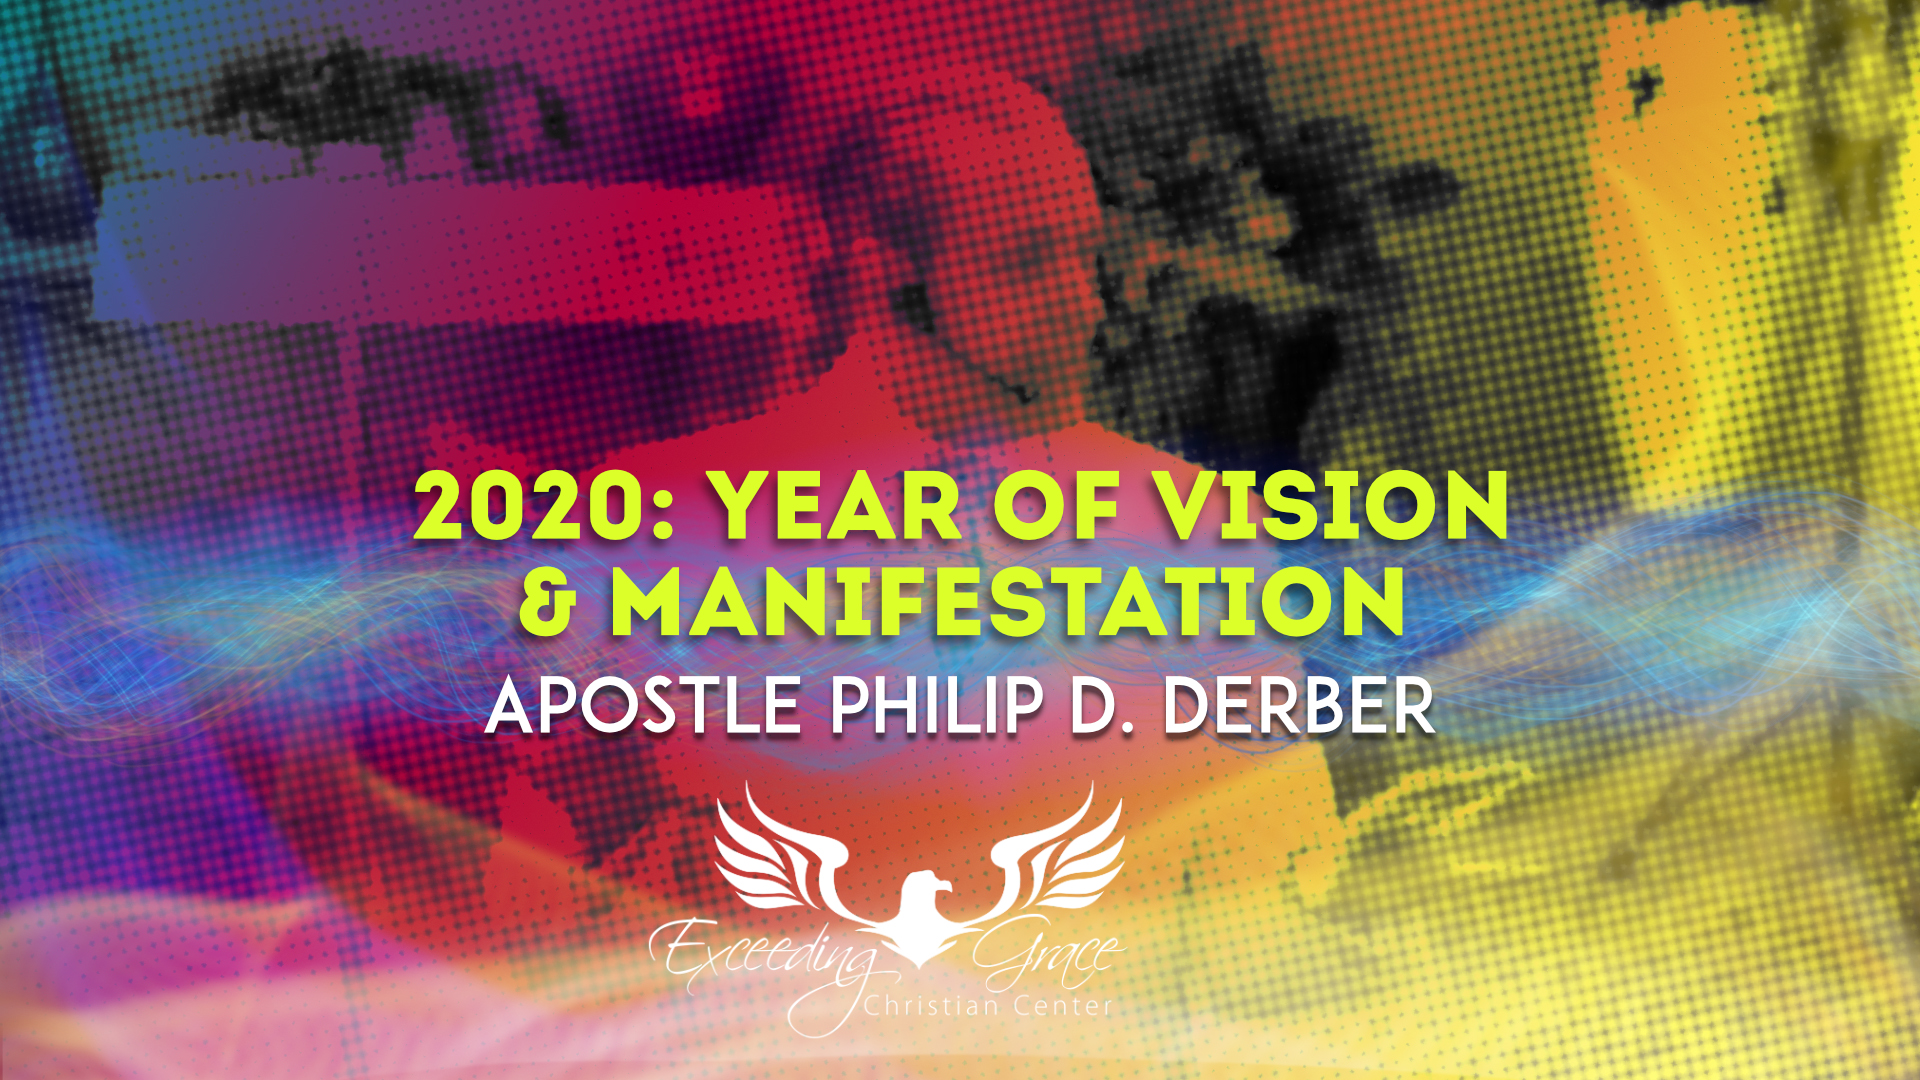 2020 The Year of Vision Manifestation